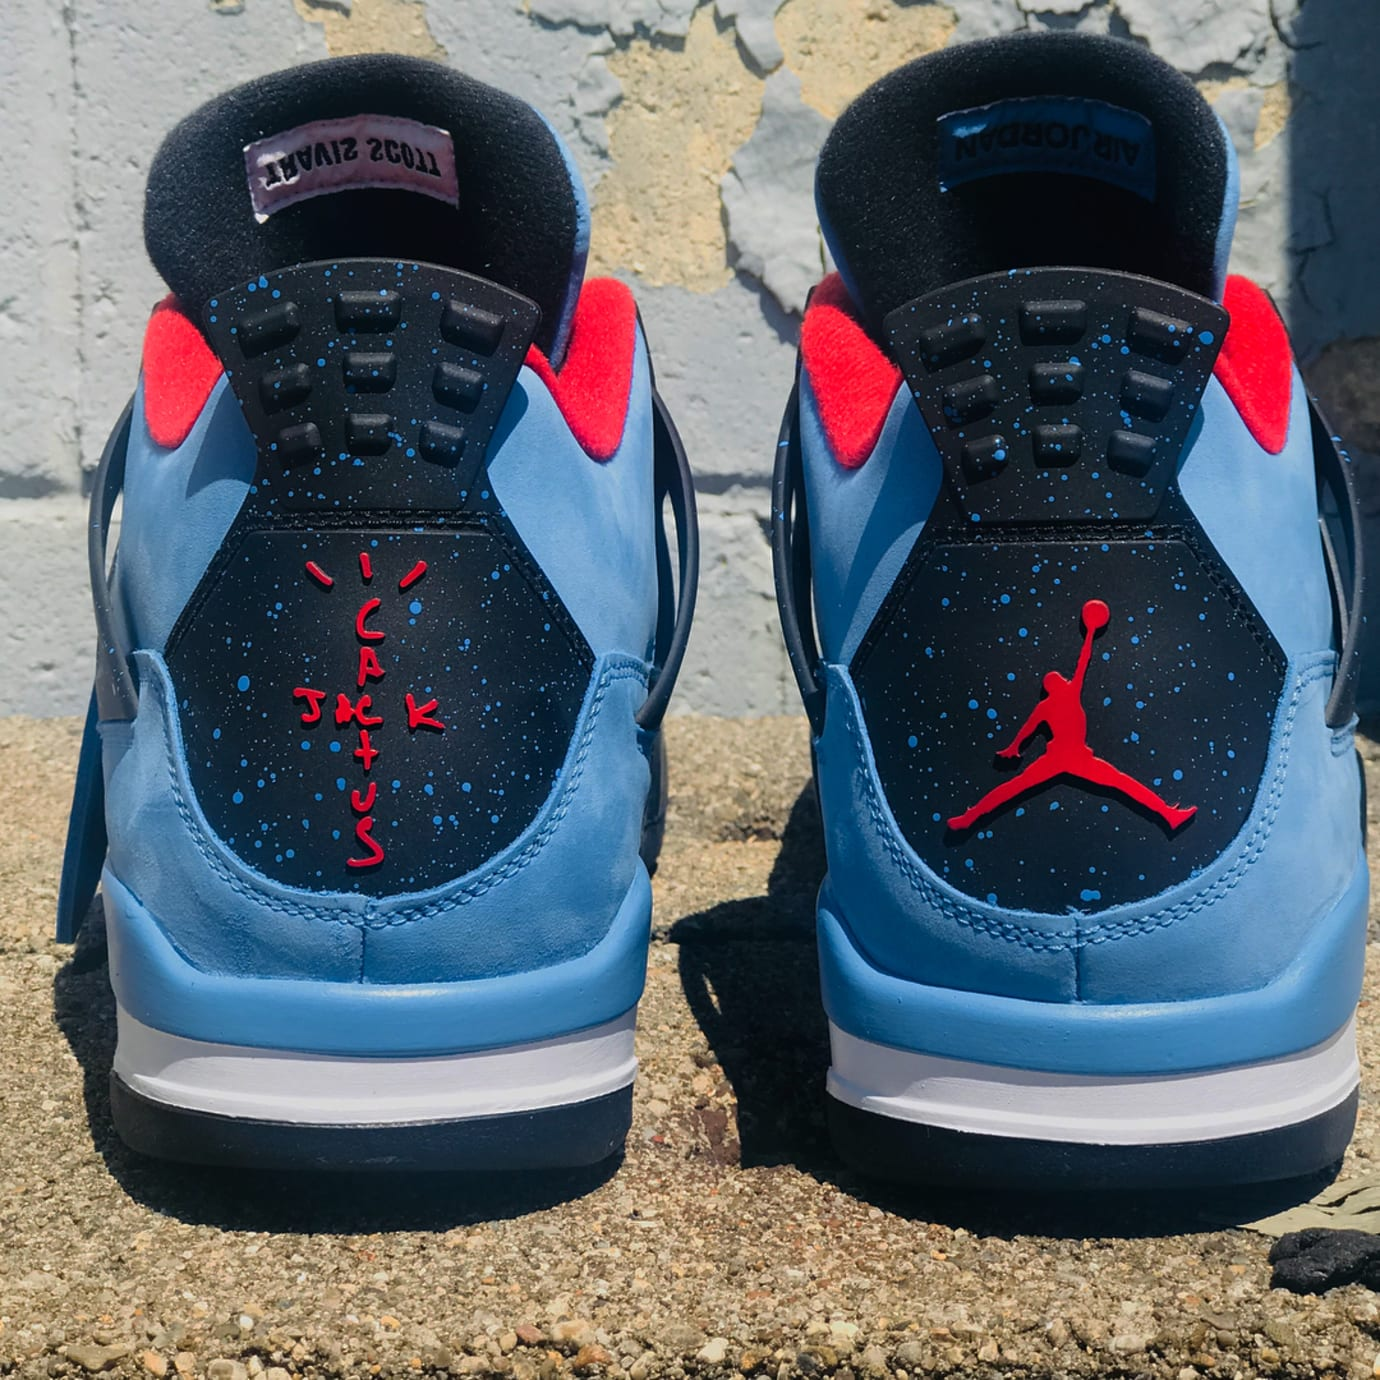 Travis Scott x Air Jordan 4 Oiler Release Date 308497-406 Beauty Heel